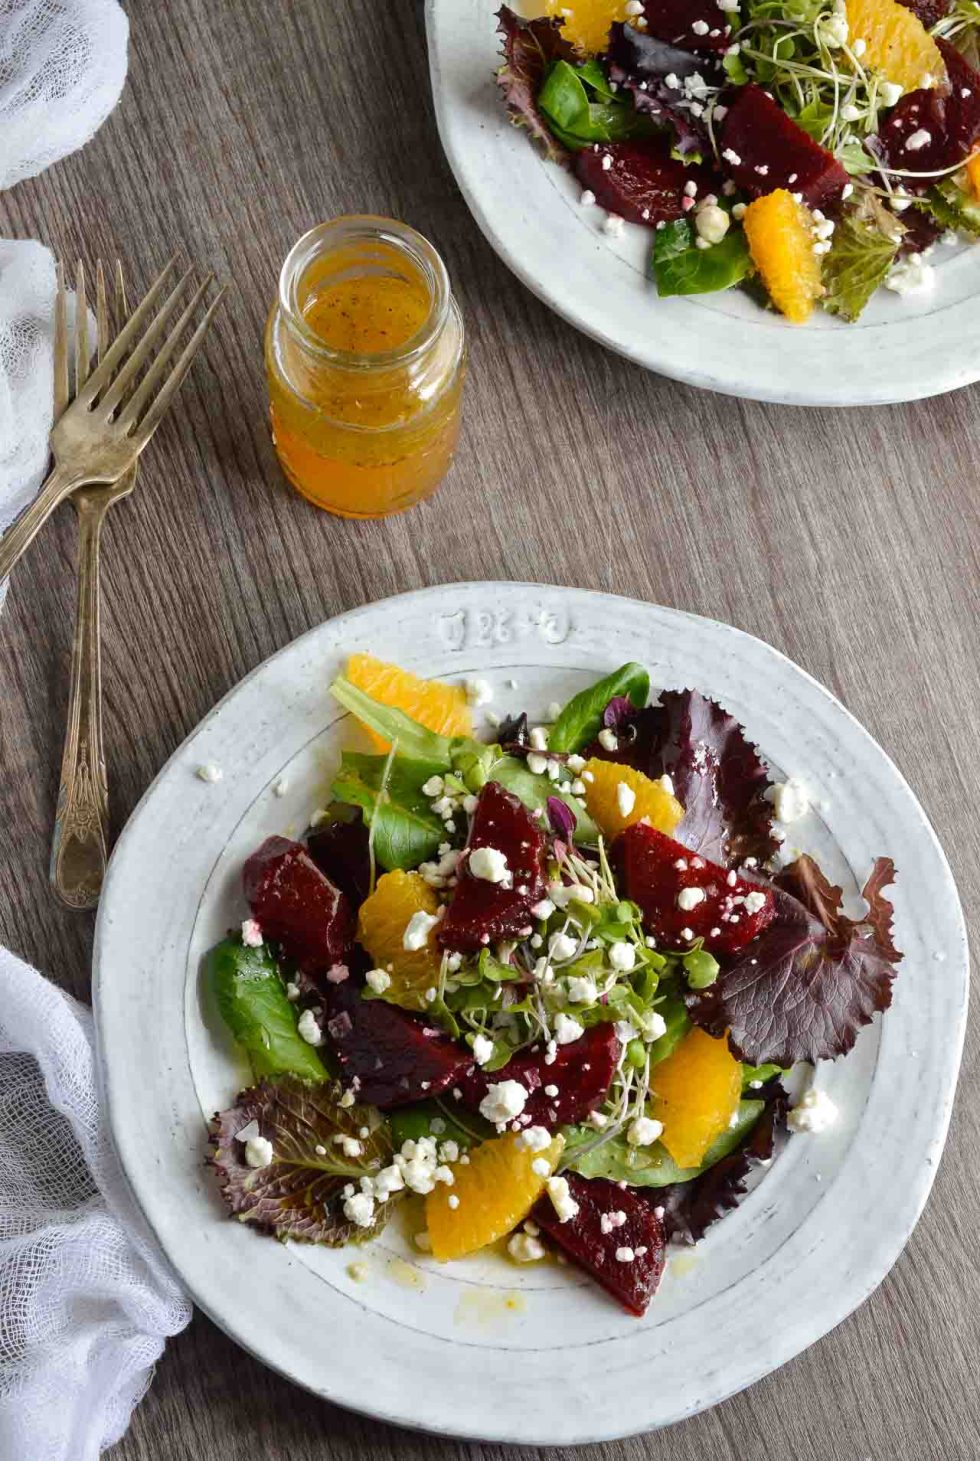 fresh beet salad on white plates with vinaigrette on the side